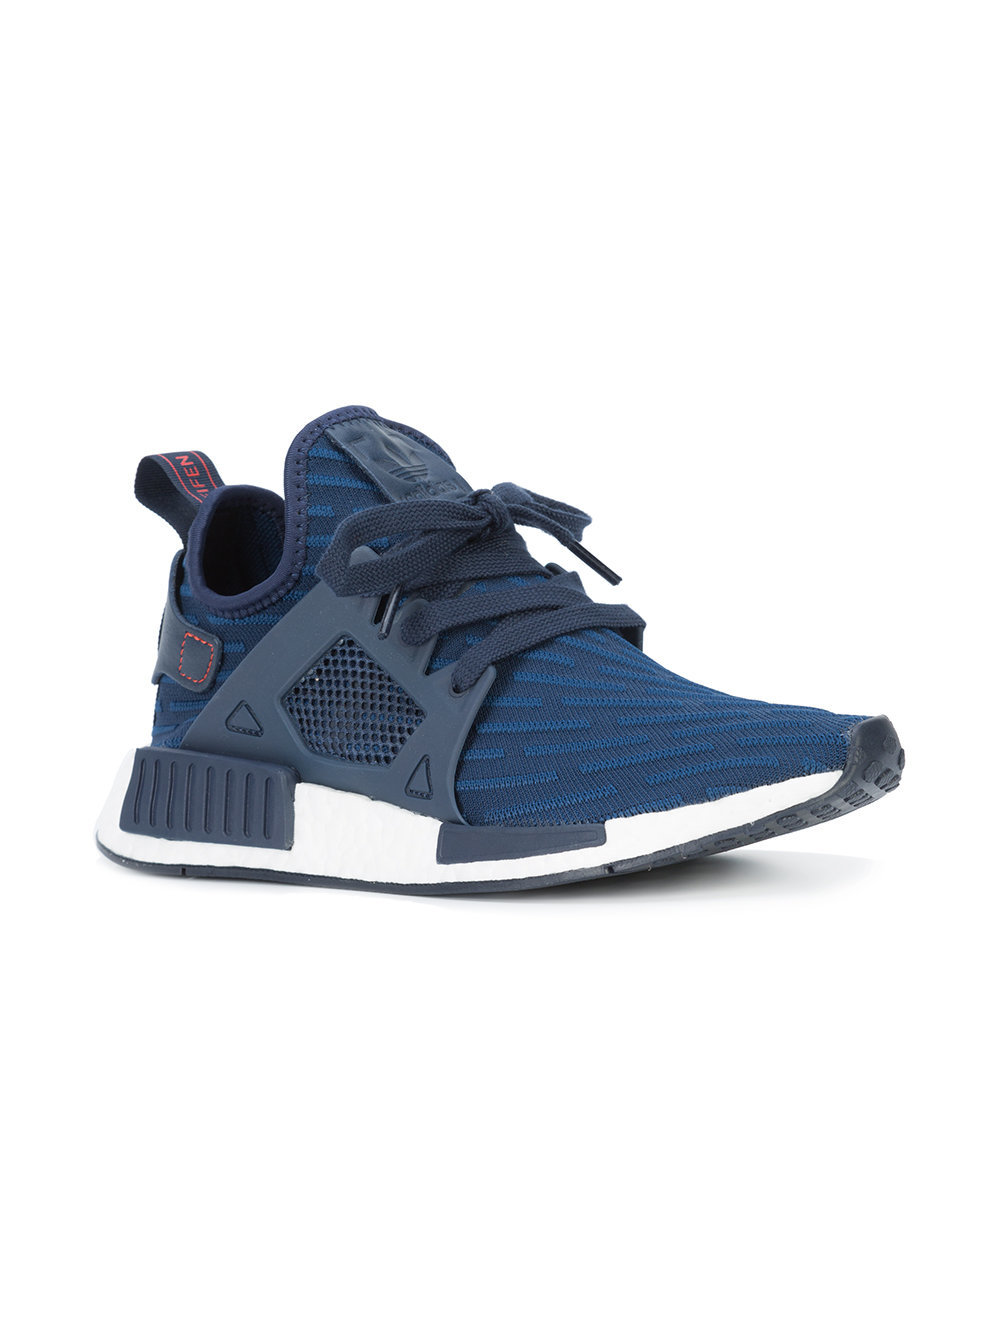 ... adidas Nmd Xr1 Primeknit Sneakers ... 46e5856f3